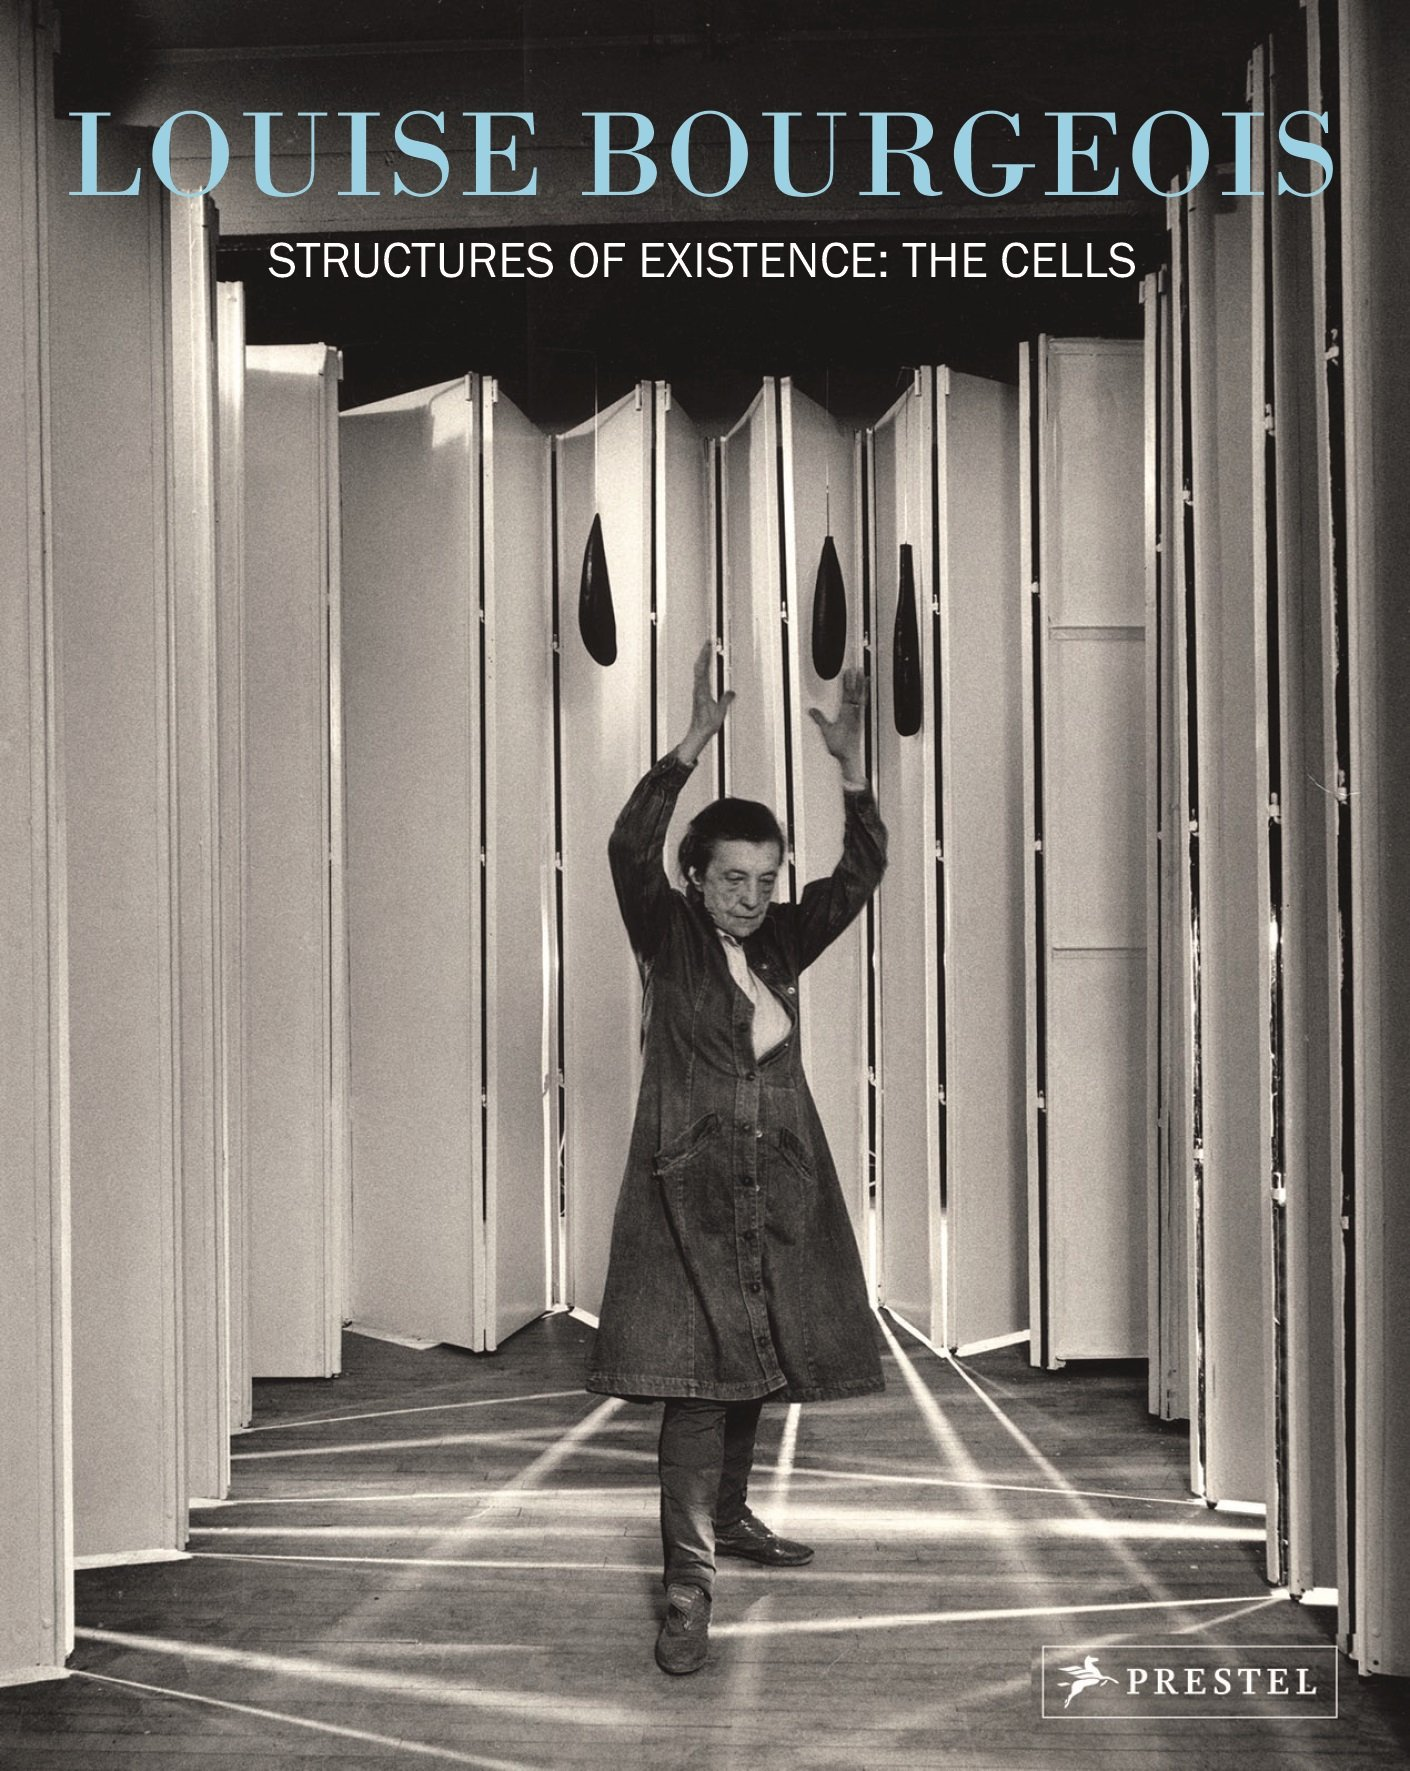 Louise Bourgeois, Structures of Existence: The Cells